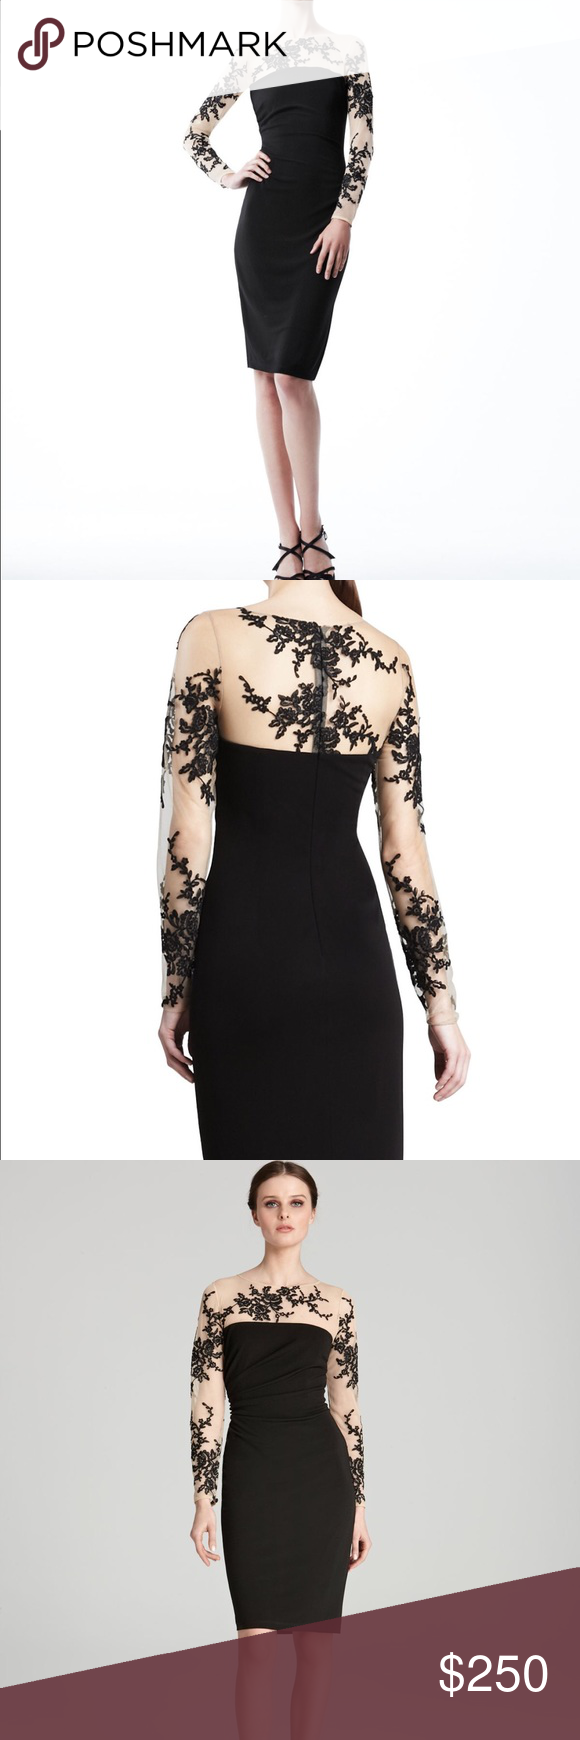 David meister black dress embroidered lace size david meister